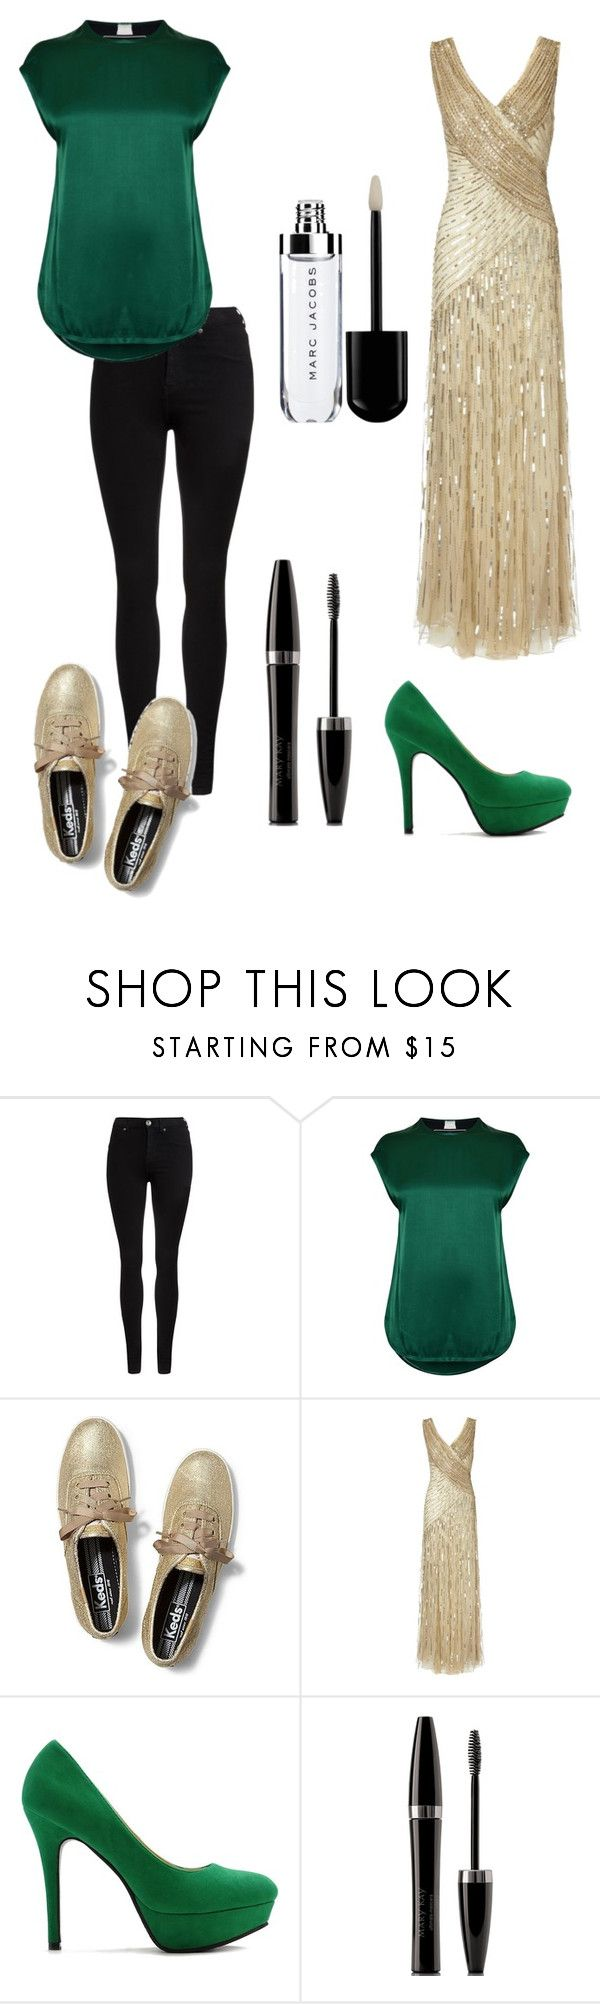 """""""Loki Genderbend"""" by everthingfan1 ❤ liked on Polyvore featuring Dr. Denim, By Malene Birger, Keds, Ariella, Ollio and Mary Kay"""